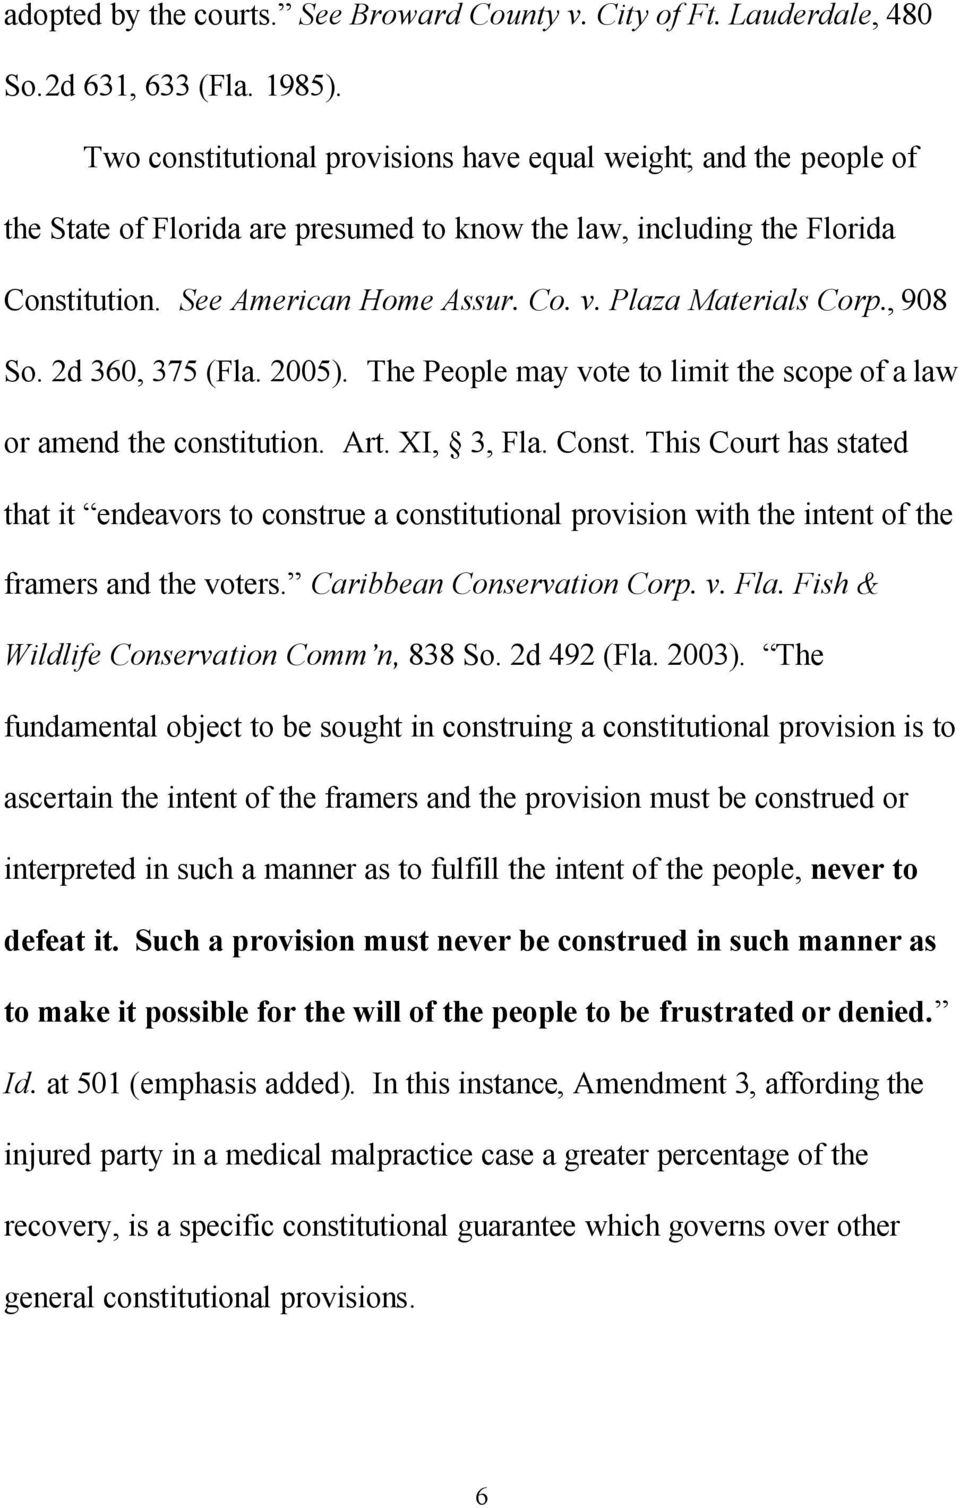 Plaza Materials Corp., 908 So. 2d 360, 375 (Fla. 2005). The People may vote to limit the scope of a law or amend the constitution. Art. XI, 3, Fla. Const.